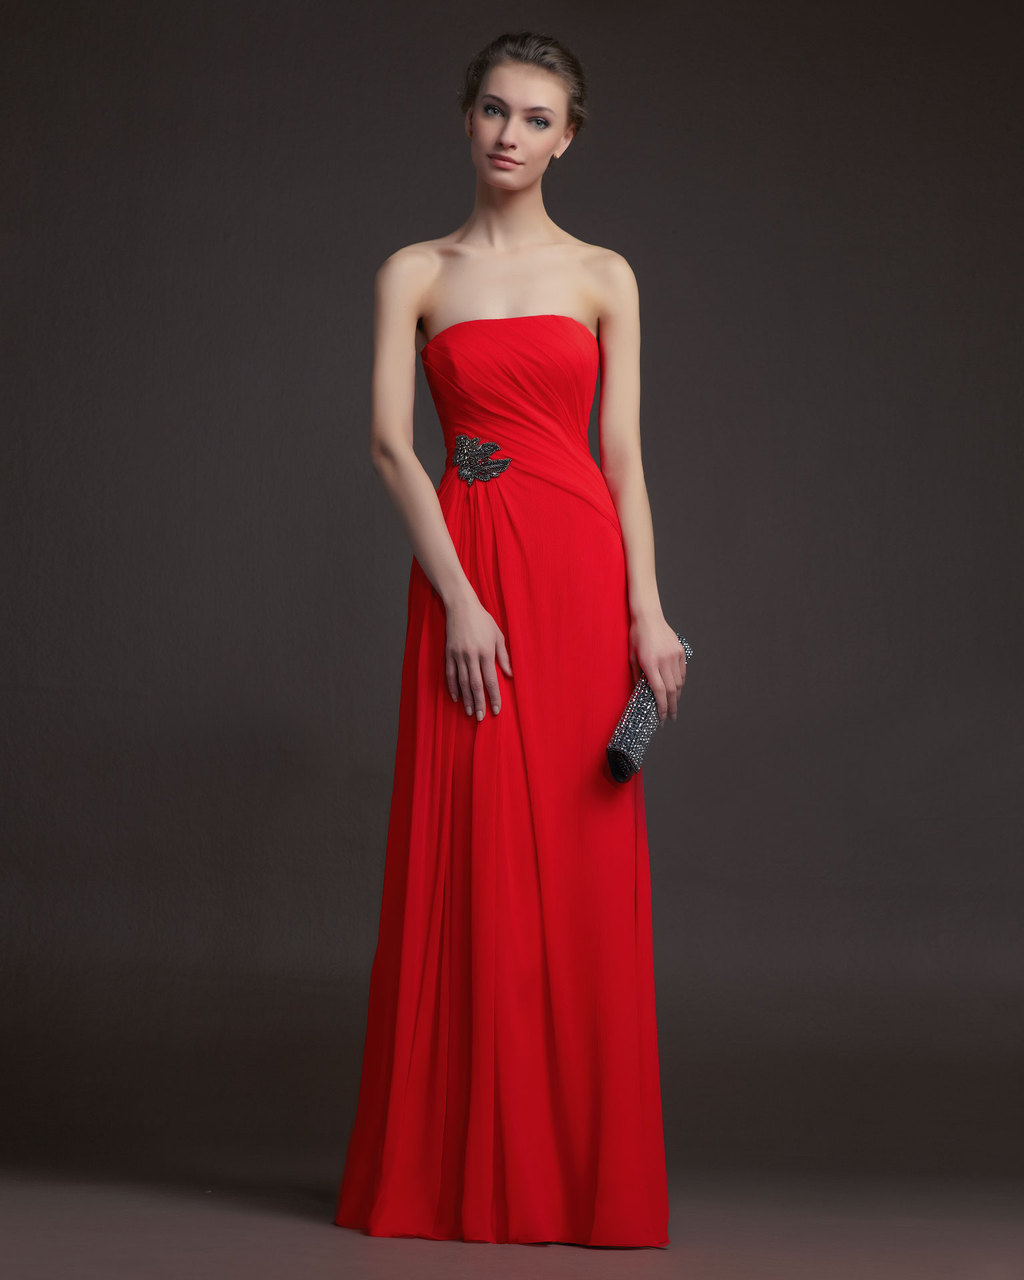 Gorgeous-2014-bridesmaid-dresses-from-aire-barcelona-strapless-orange-red.full